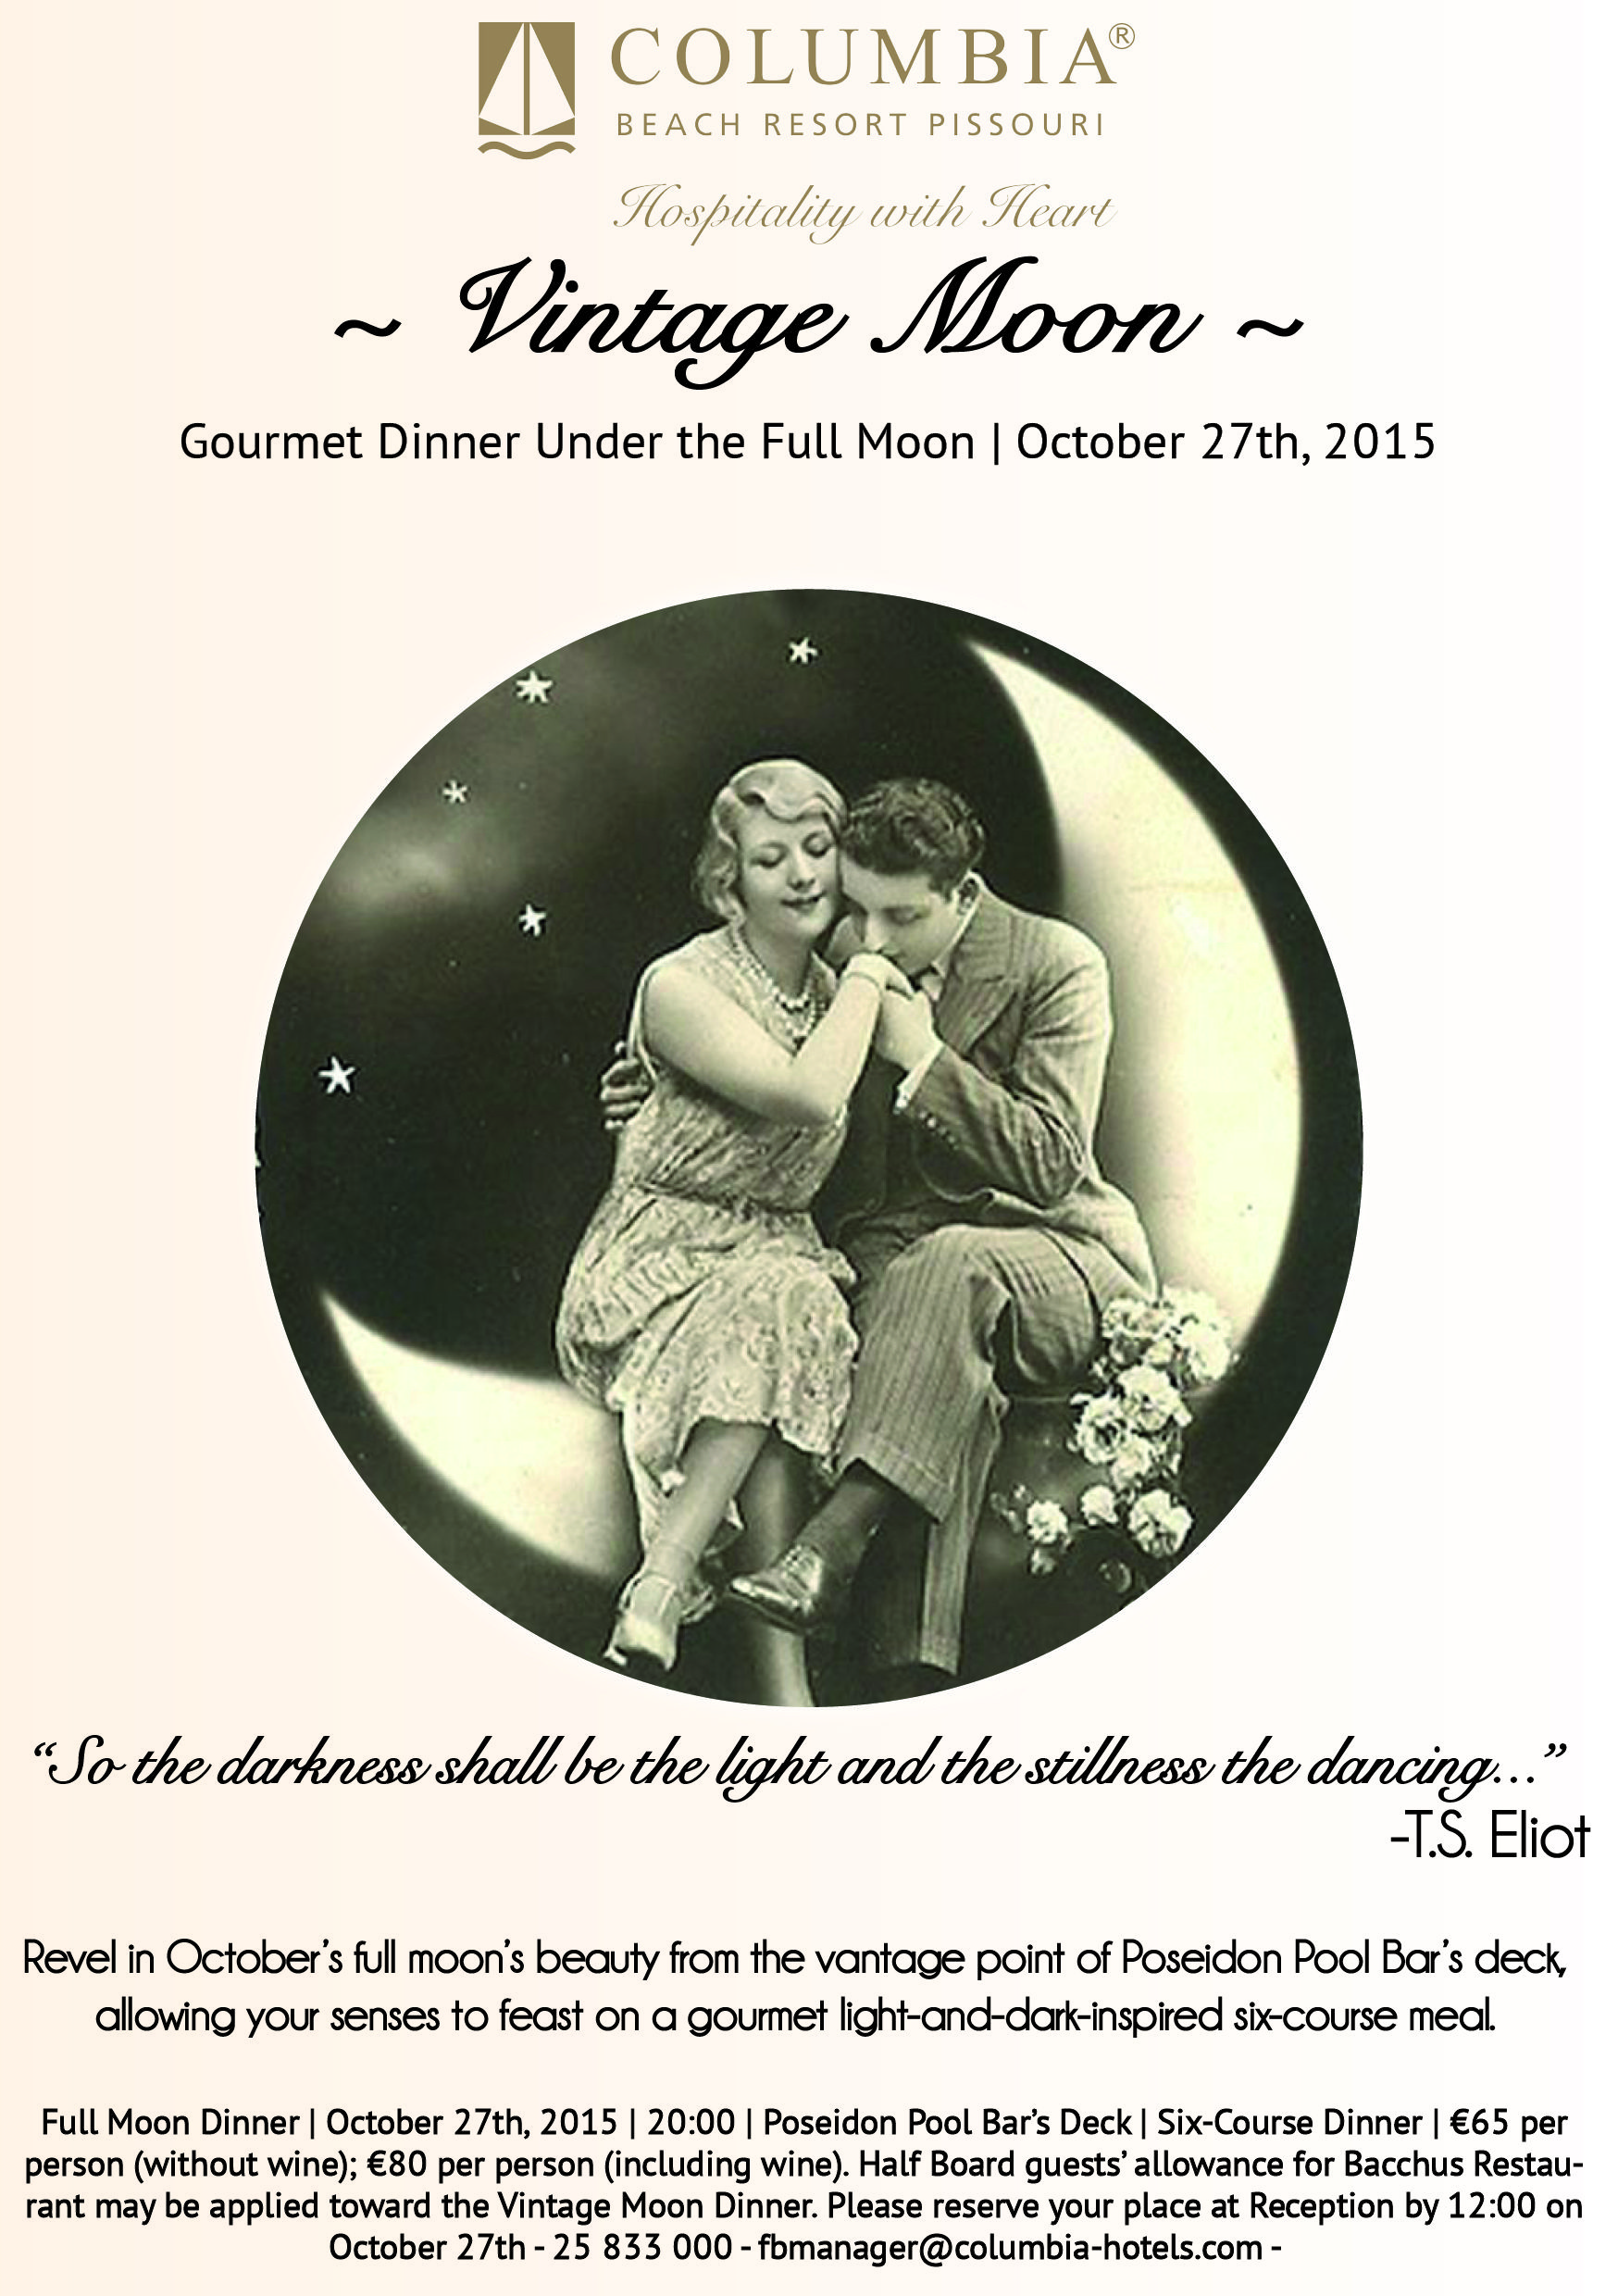 Back by popular demand, the last Full Moon dinner of the season: Vintage Moon! Sway to the sounds of old jazz classics as you avail yourselves of a light-and-dark inspired 6-course meal. Book now! #FullMoonDinner #UnderTheMoonlight #HospitalitywithHeart